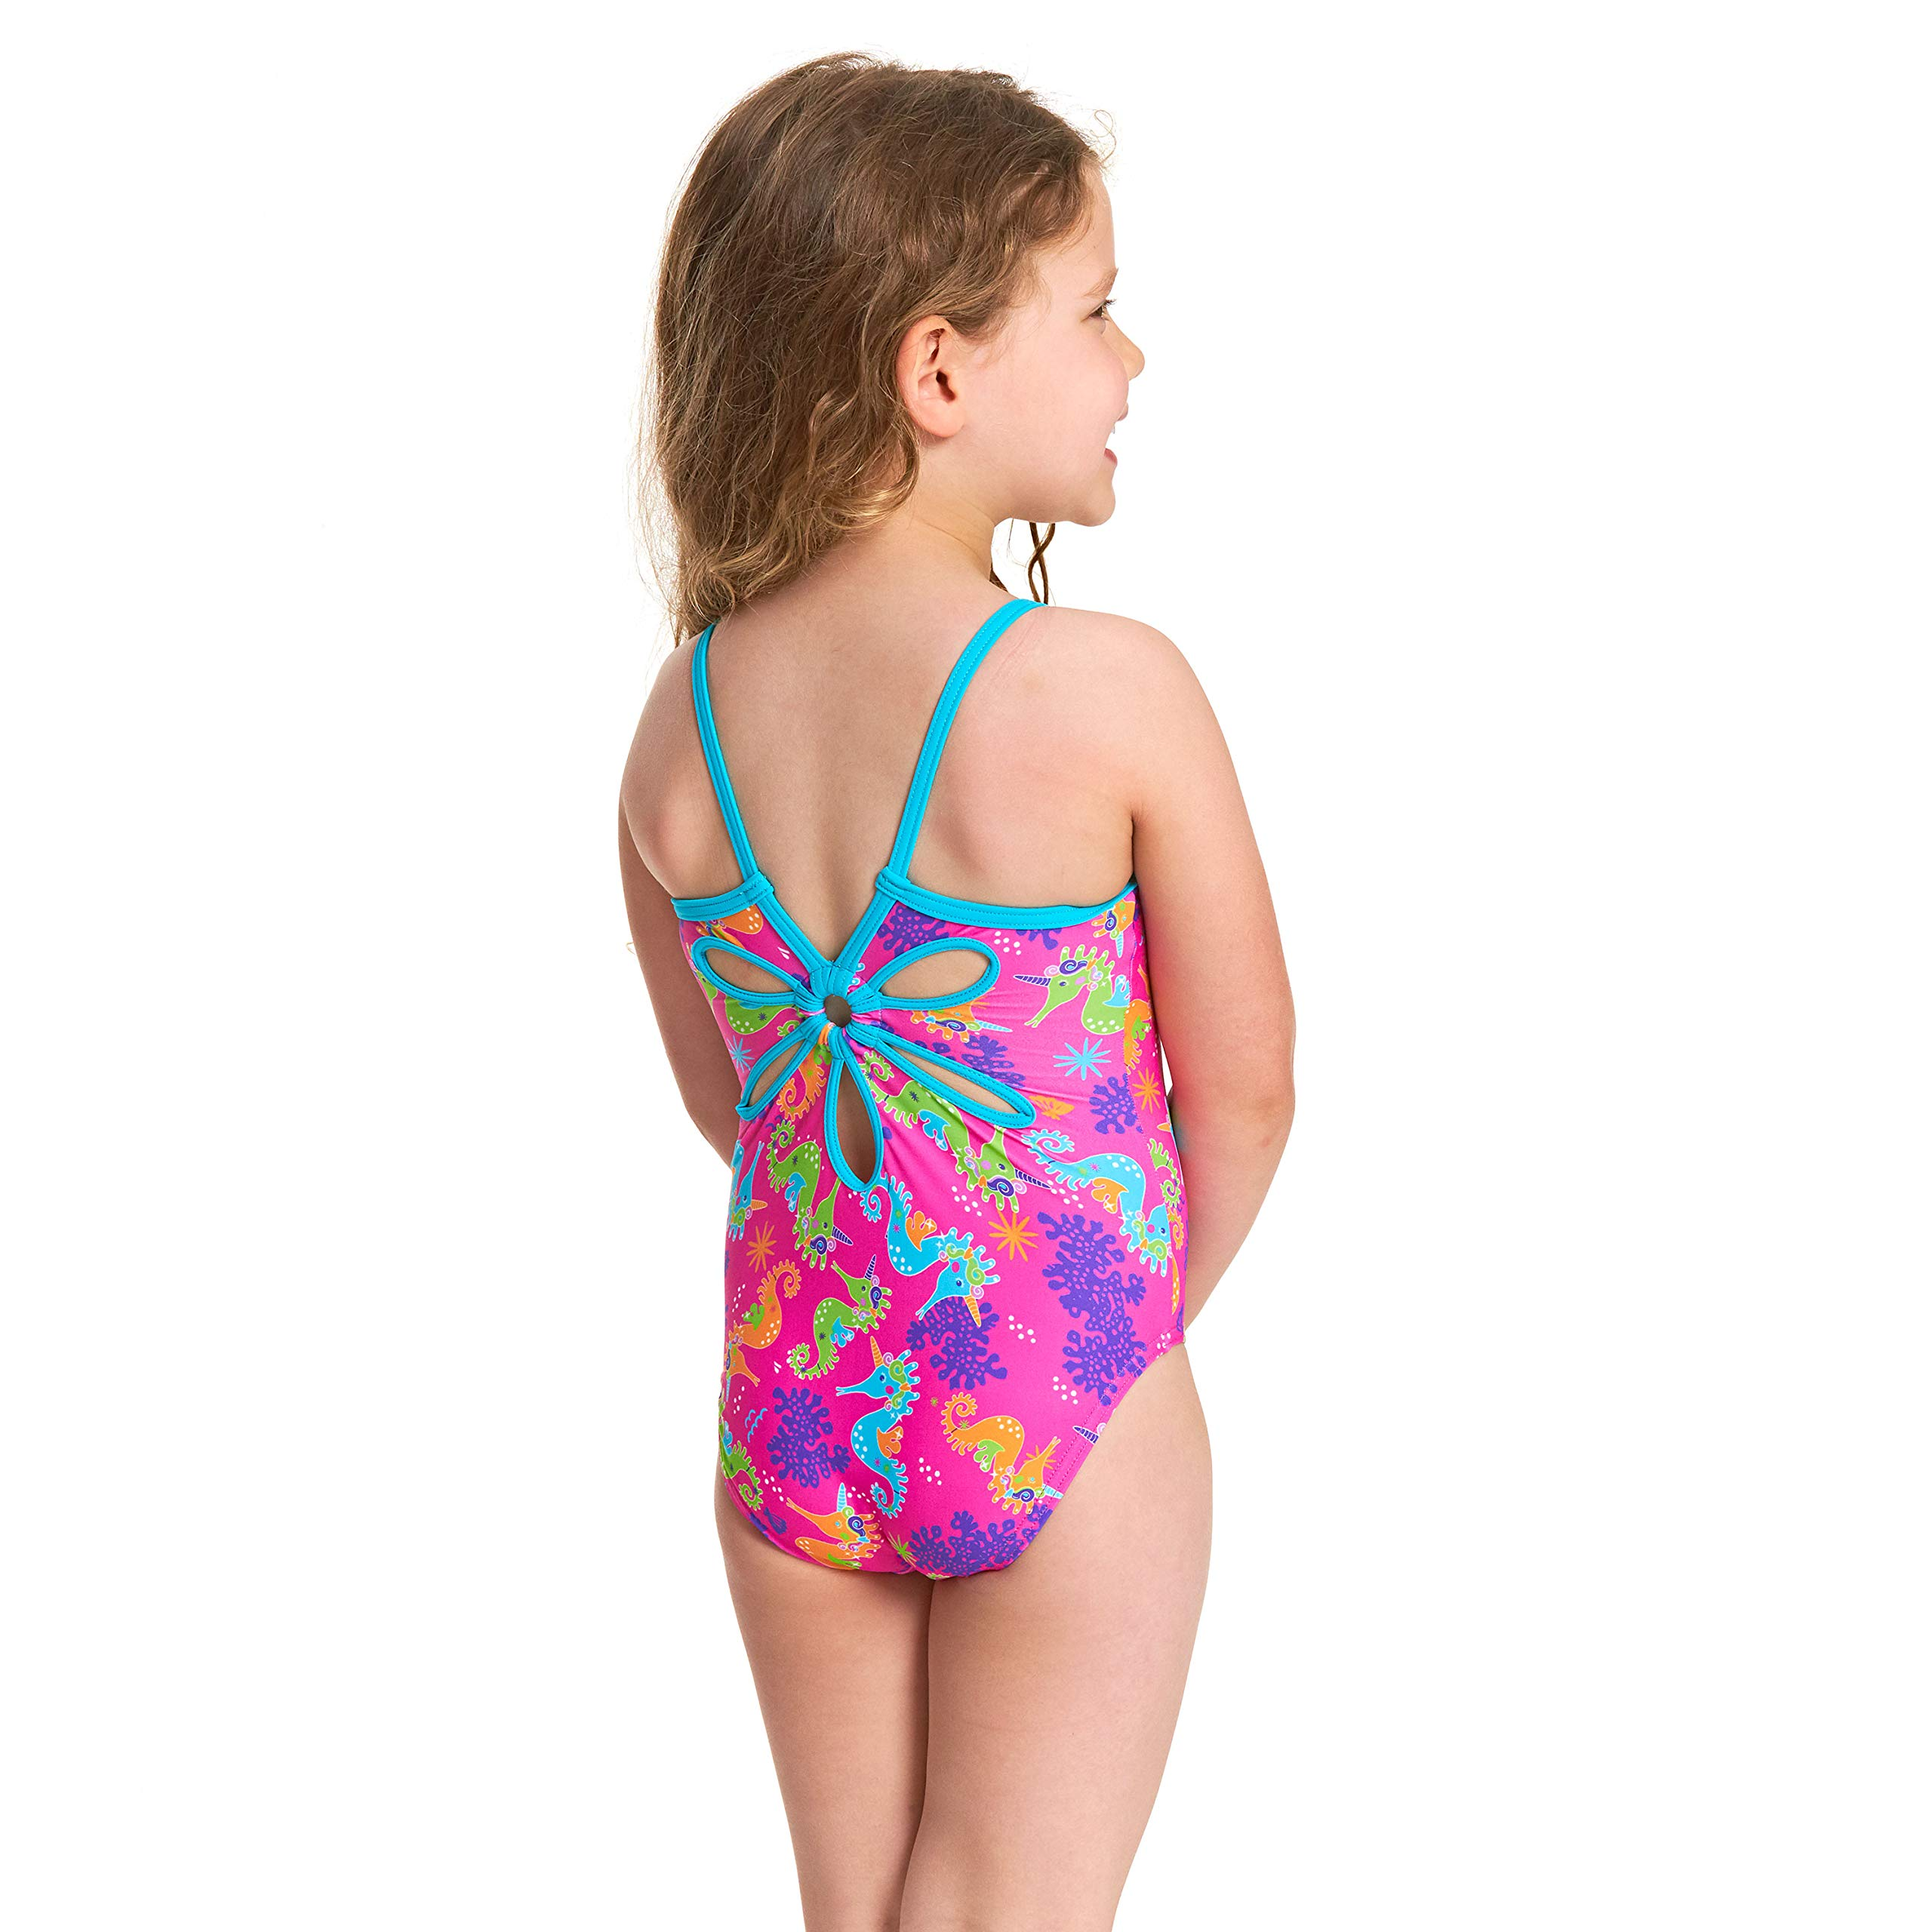 e551559431096 Amazon.co.uk: Zoggs: Girls Swimwear 1-6 yrs